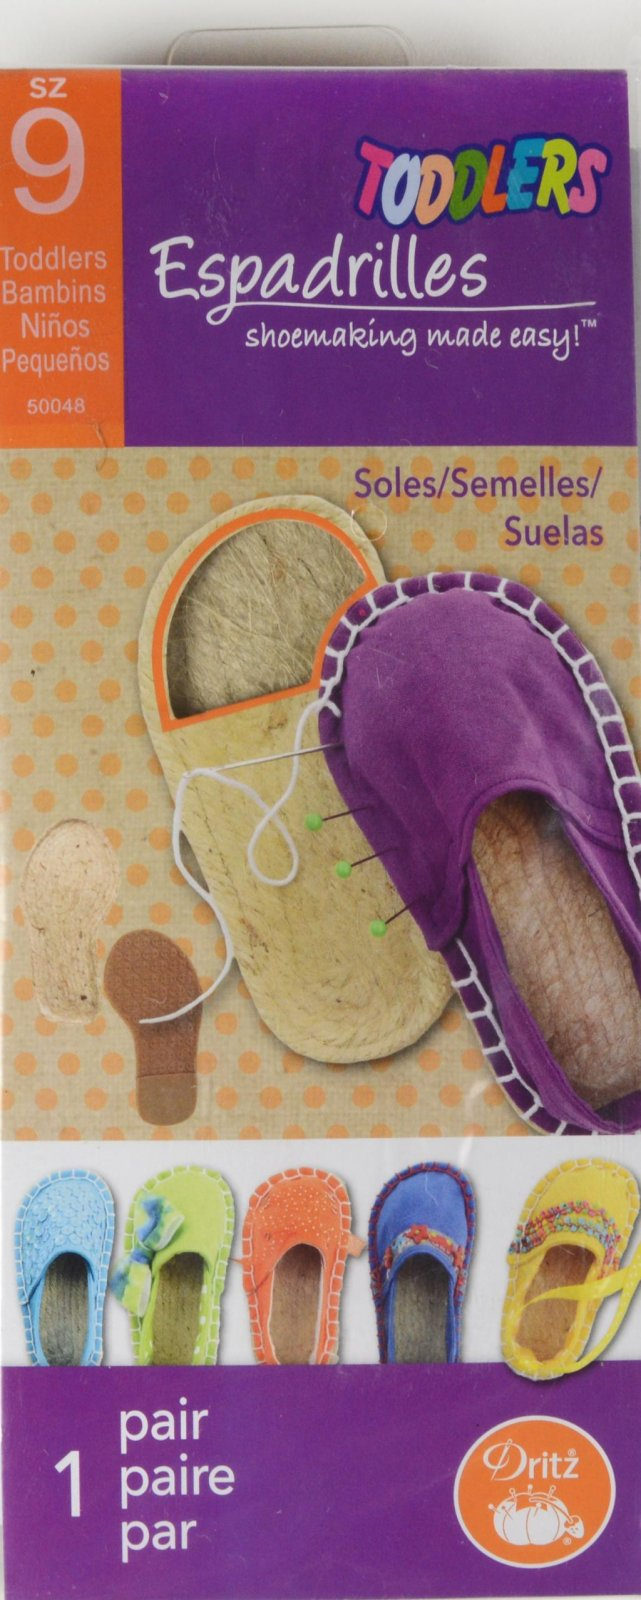 Espadrilles Shoemaking Toddlers Size 9